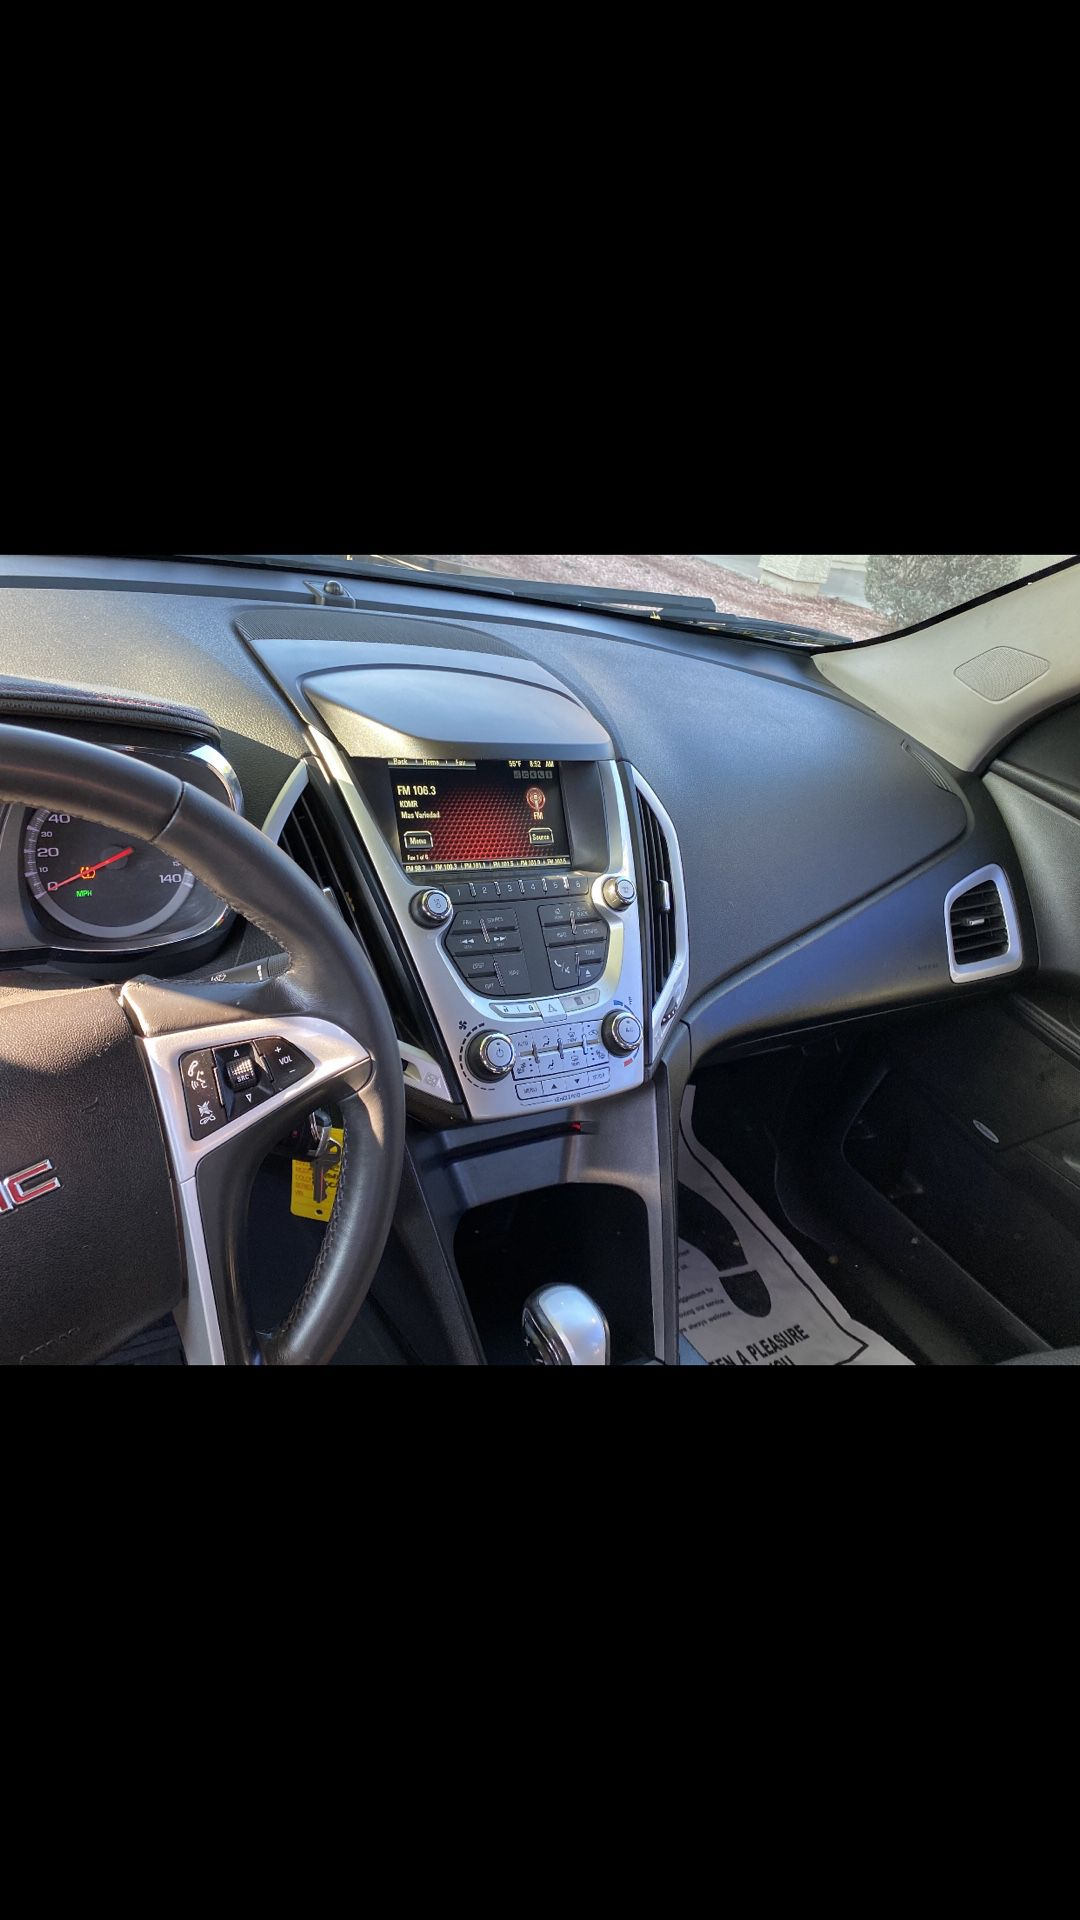 2014 GMC Terrain AWD Regular title, 4 cylinders, cold a/c, very clean interior, navigation system, back up camera, bluethoot, all wheel drive, 167k m